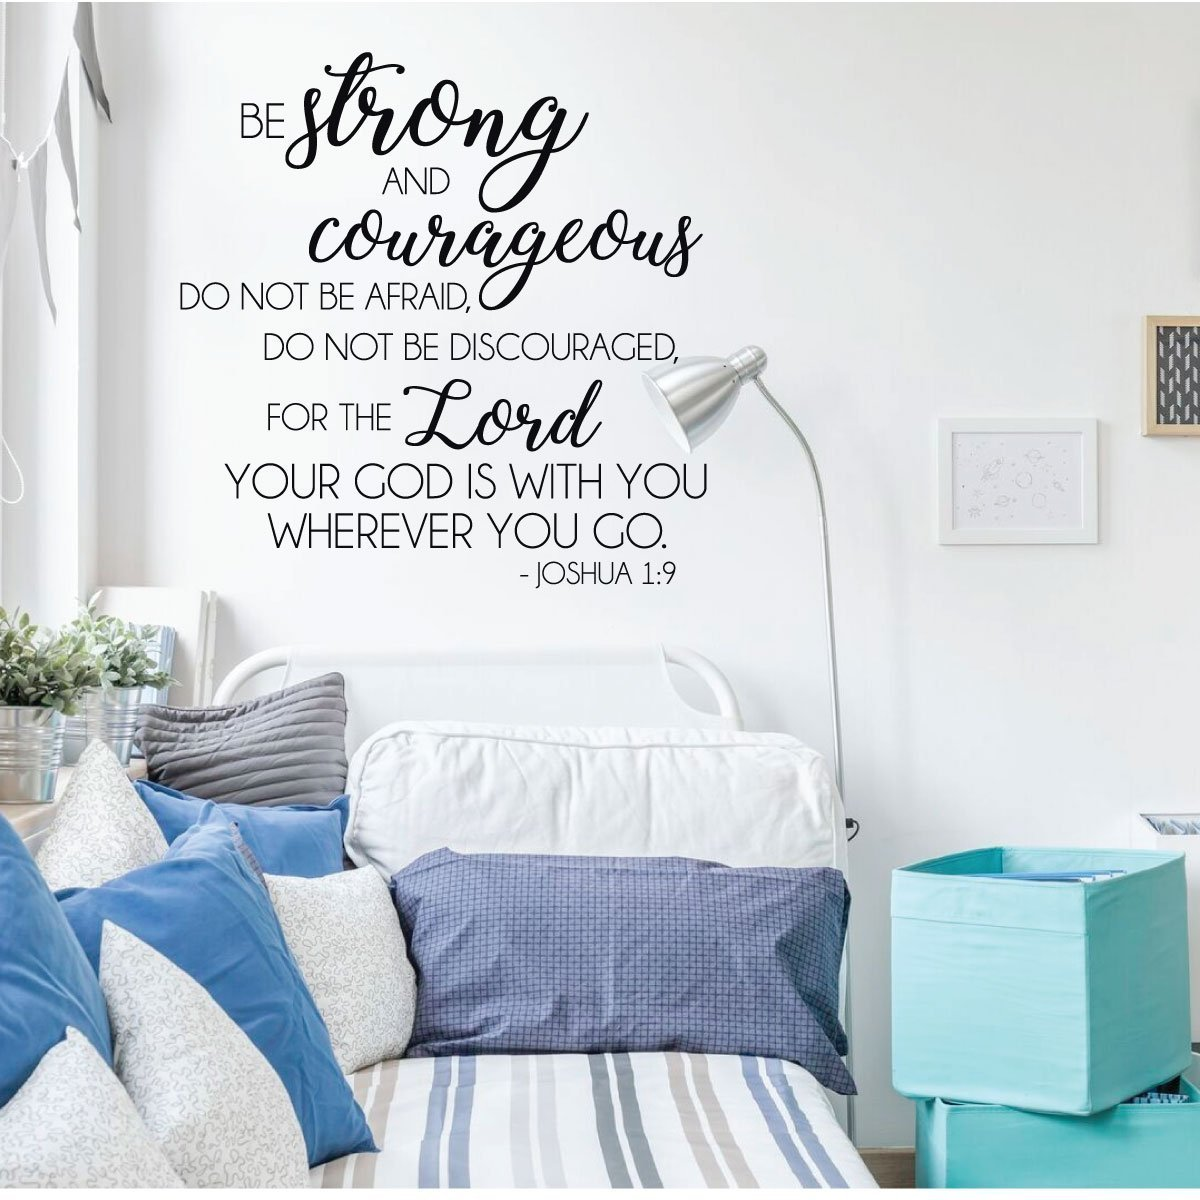 Christian Wall Decal   Bible Verse Wall Decal   Joshua 1:9   Be Strong